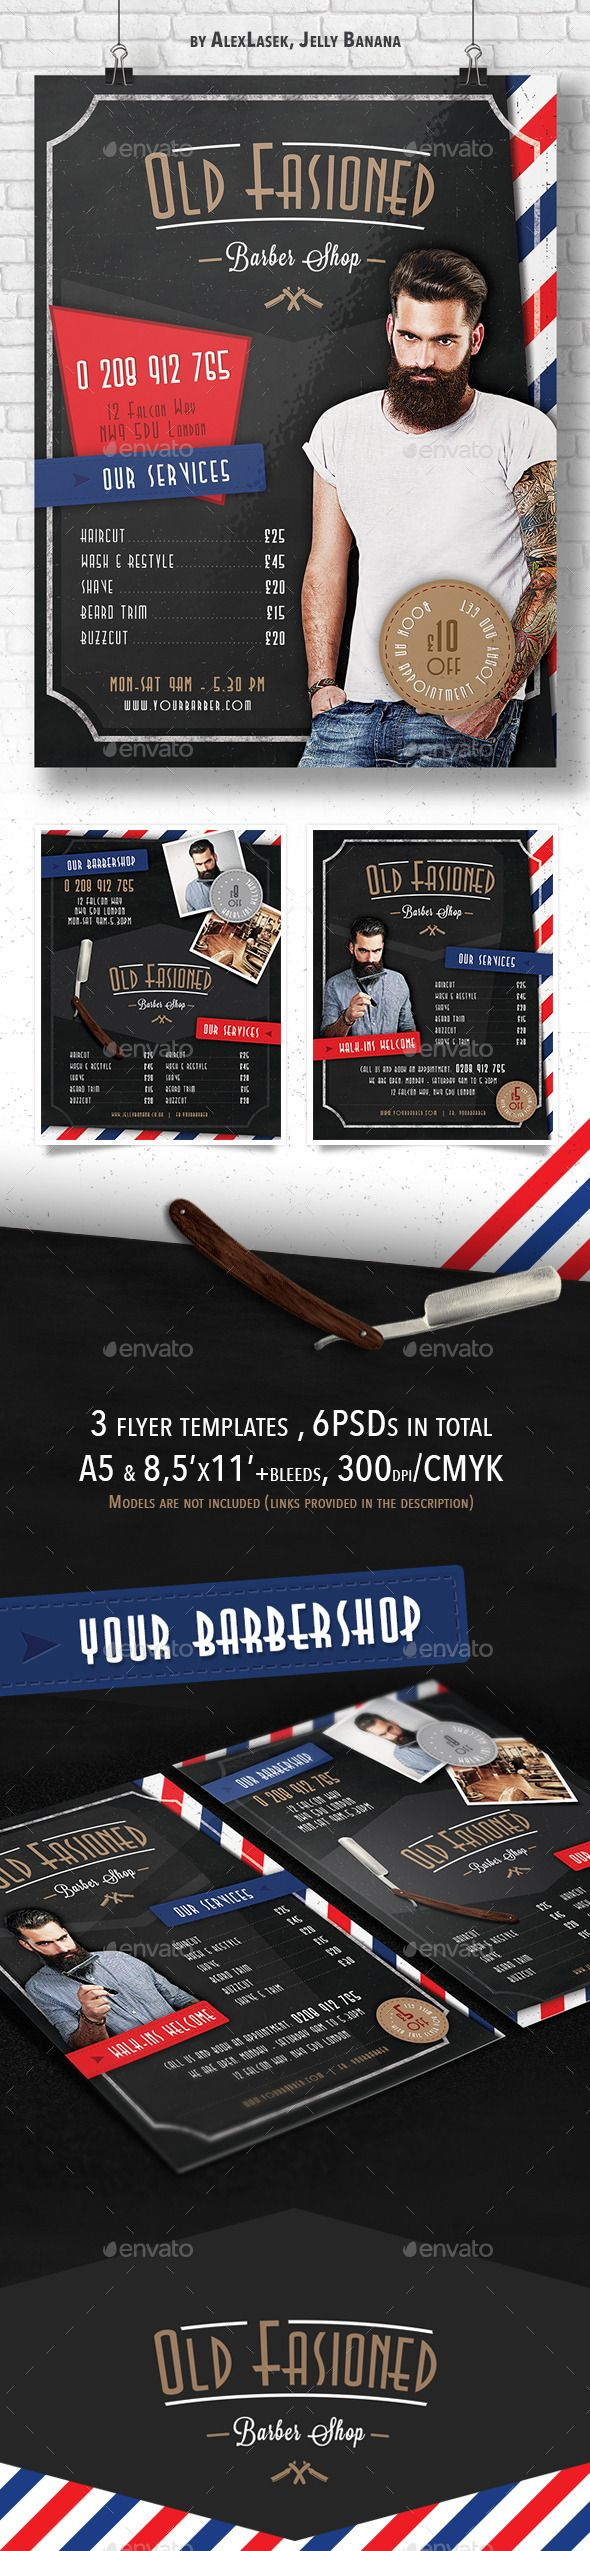 3 Old Fashioned Barber Shop Flyer Templates 6PSD